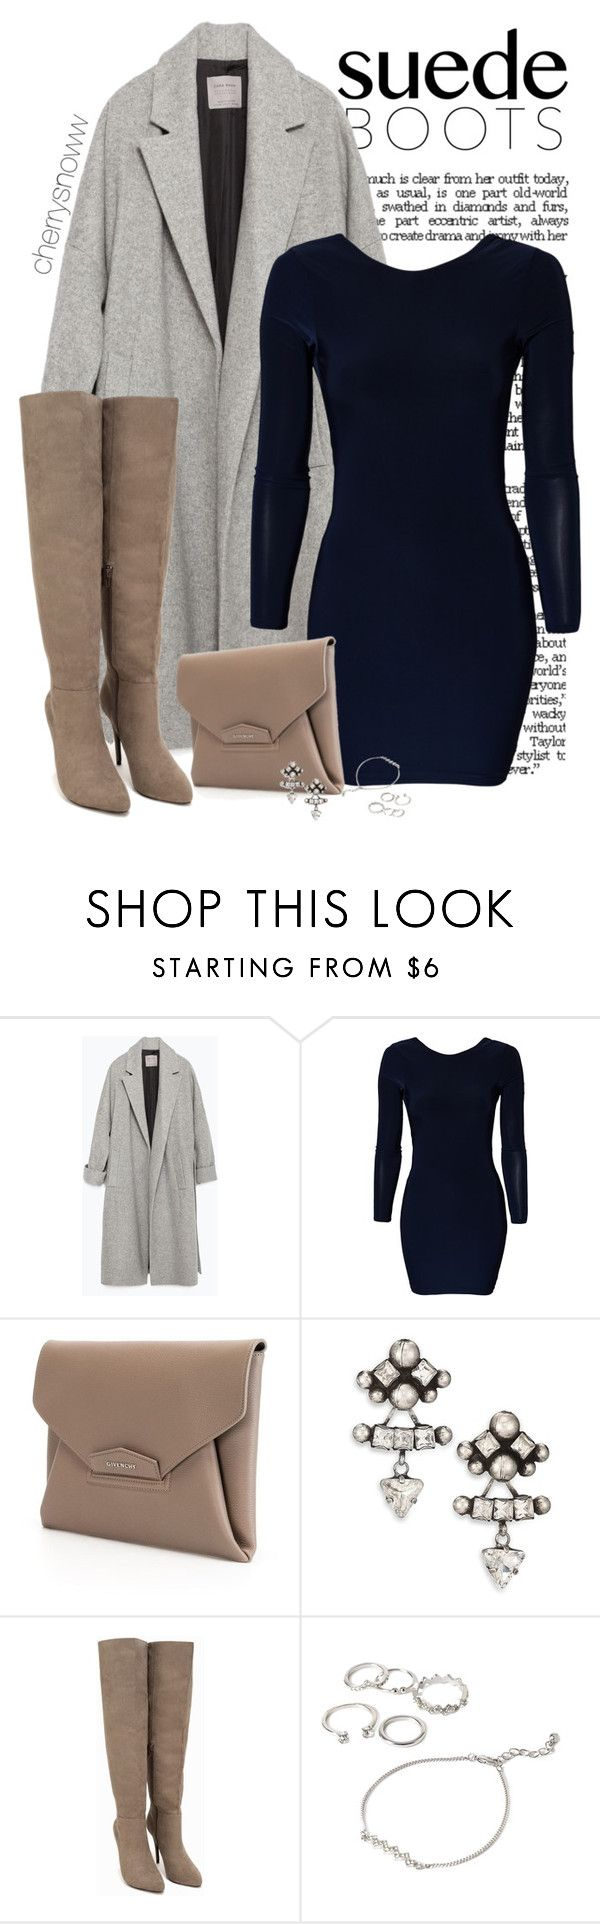 """Classy chic suede thigh high boots outfit"" by cherrysnoww ❤ liked on Polyvore featuring Zara, Vero Moda, Givenchy, DANNIJO, Nly Shoes and Forever 21"